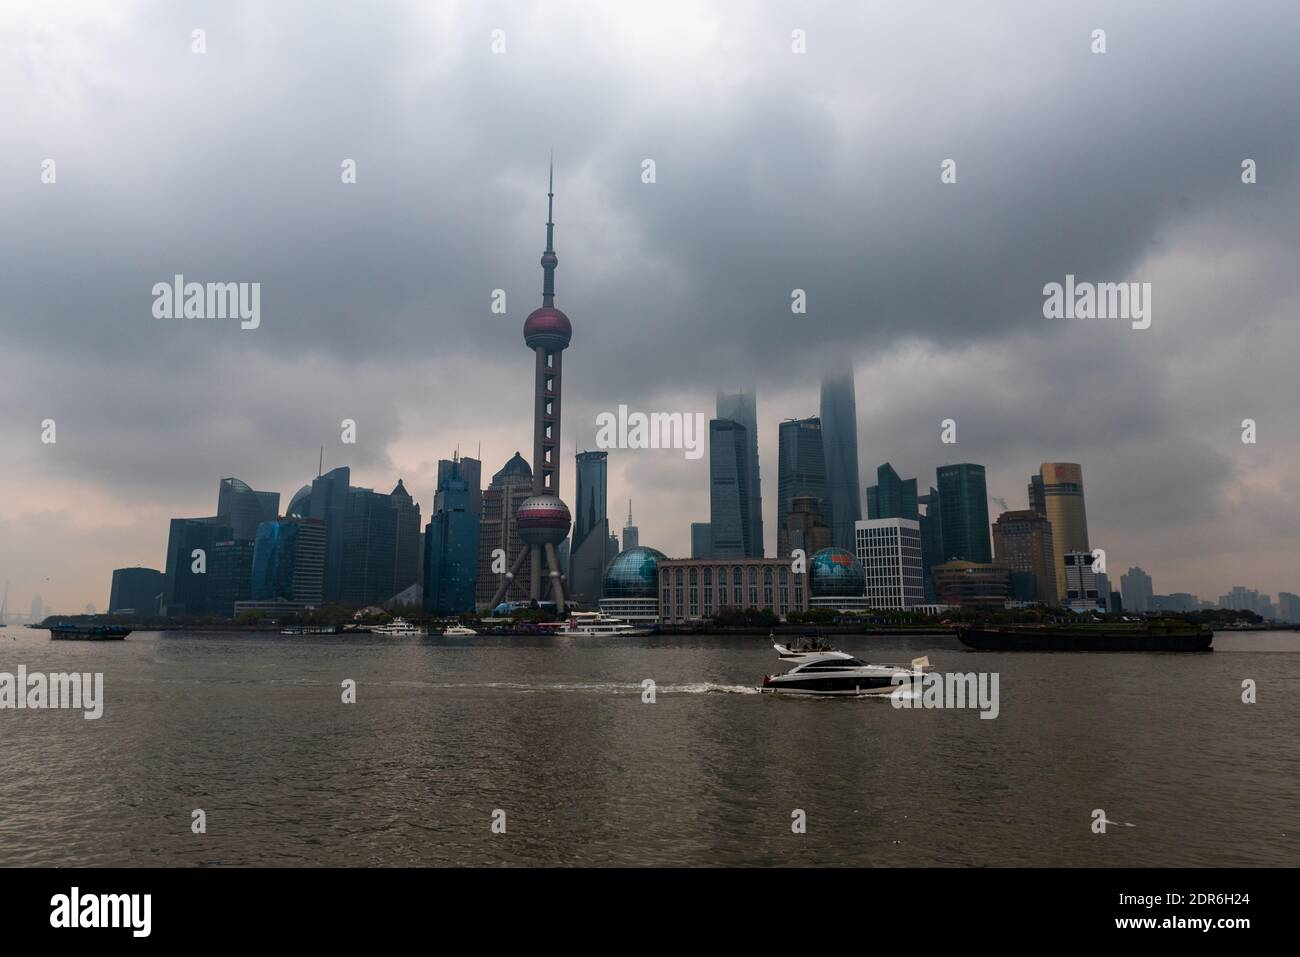 Shanghai, China -- March 30, 2016. A wide angle photo of the Shanghai skyline featuring the Oriental Pearl Tower on a foggy morning. Stock Photo